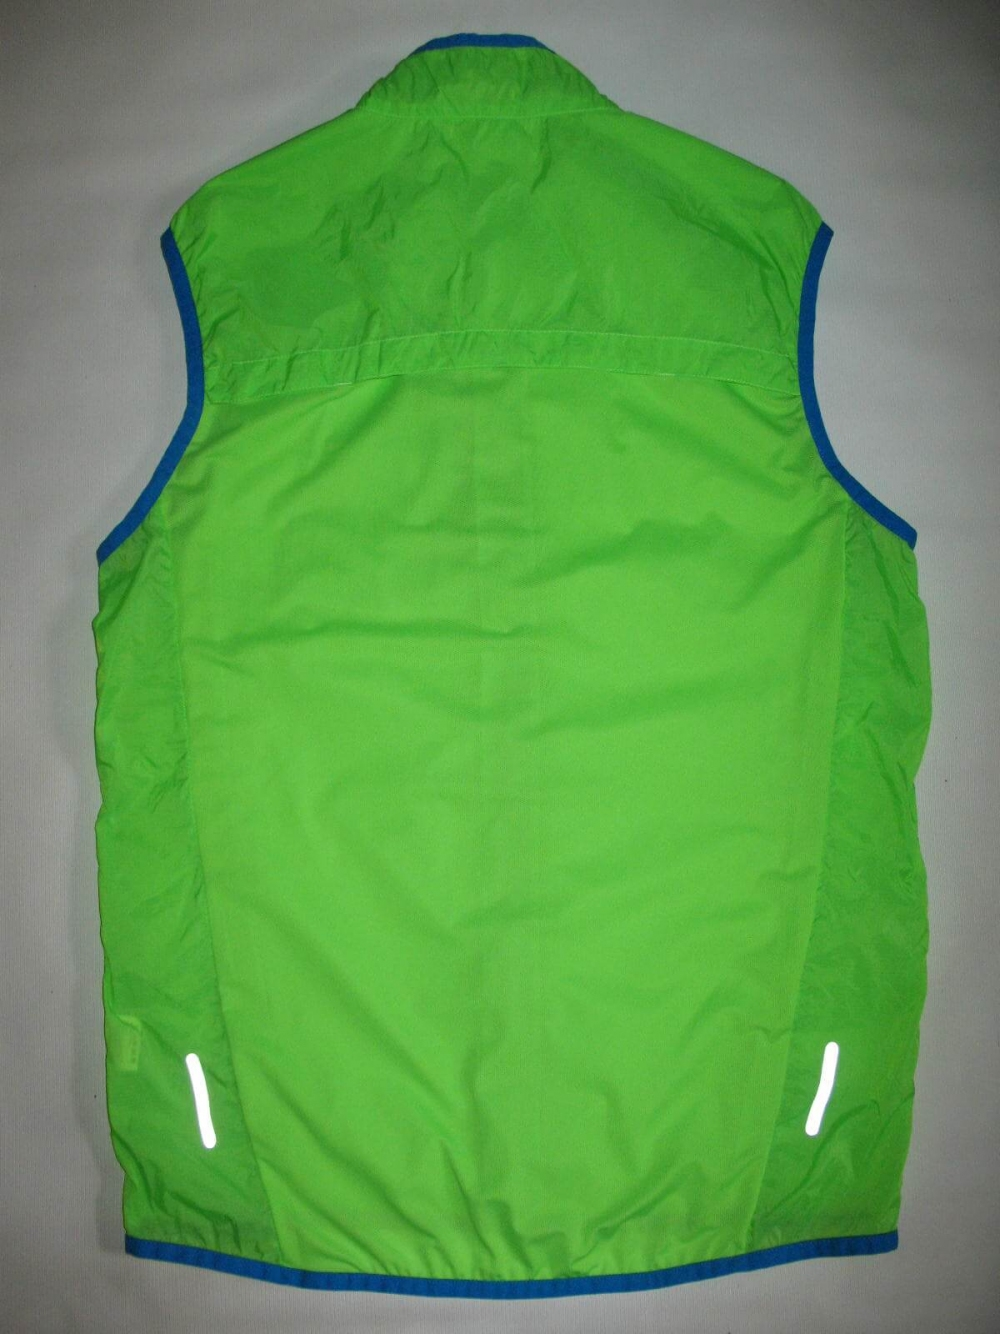 Жилет CRANE cycling/run ultralight vest (размер 50/L) - 1